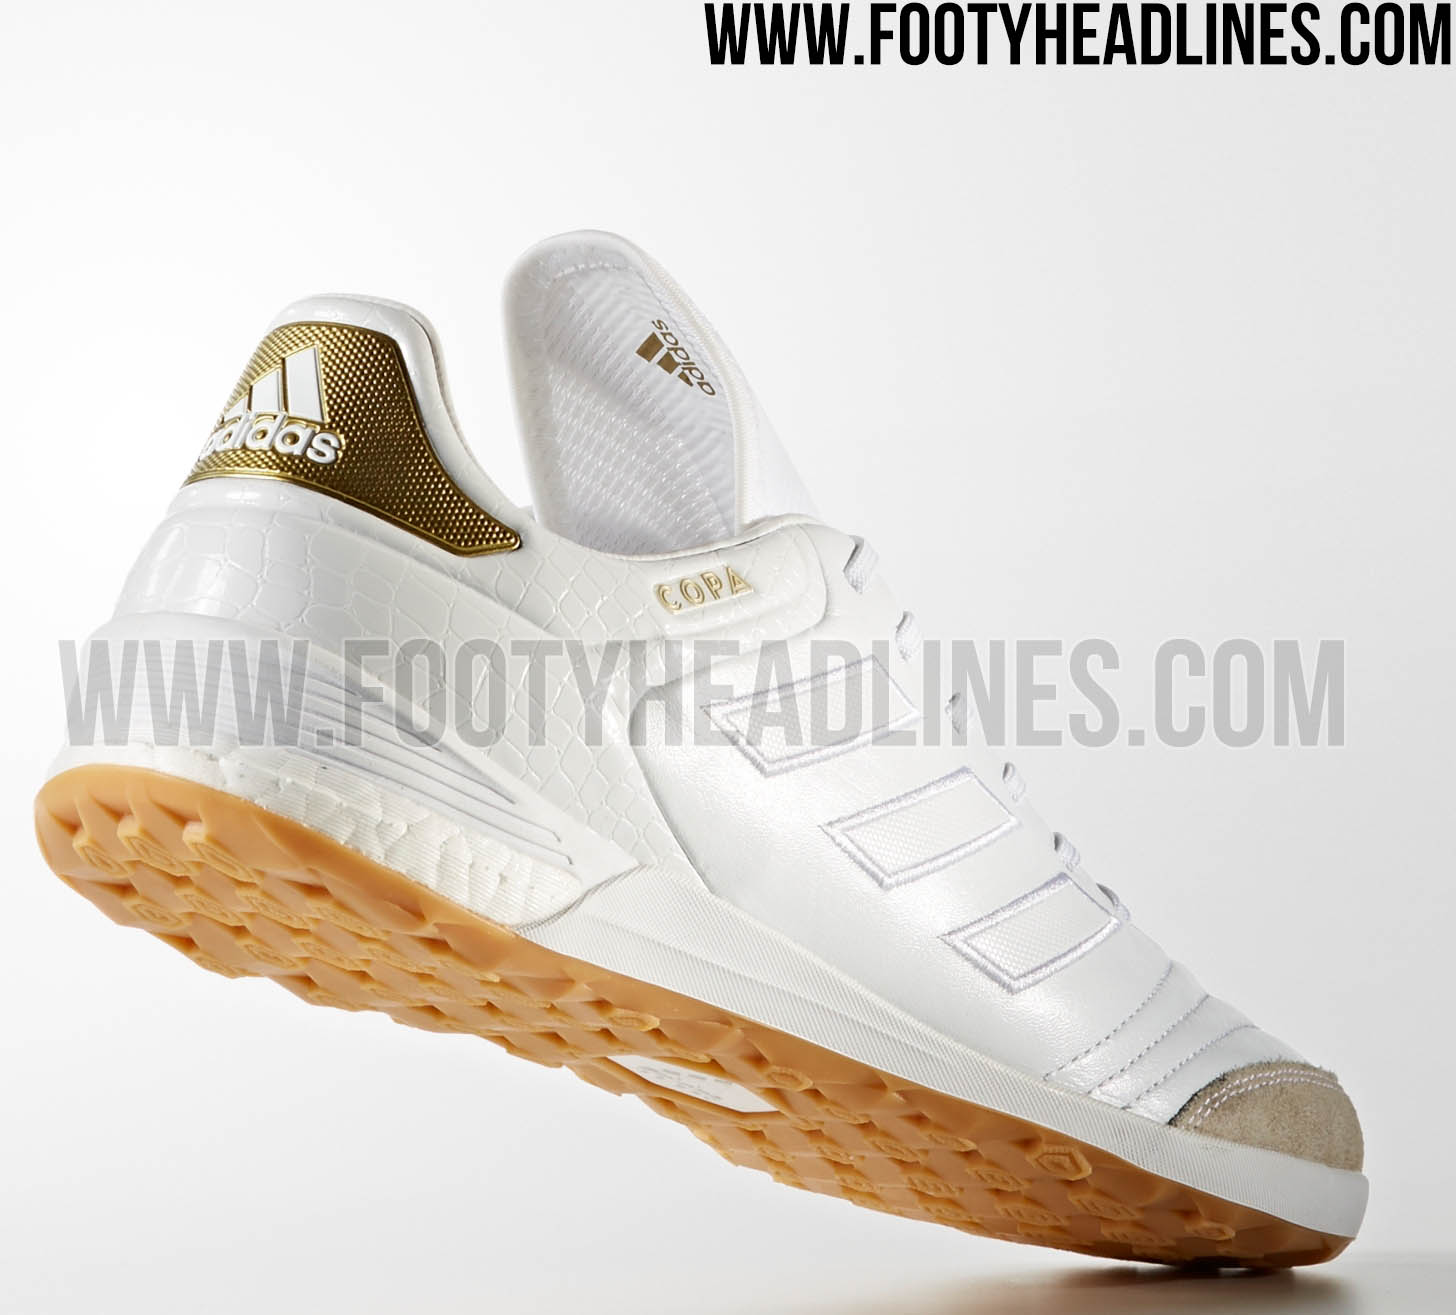 best website 5903d 153dd ... White Gold Metallic Awesome Adidas Copa Tango 17 Crowning Glory Boost  Boots Released - Footy Headlines ...